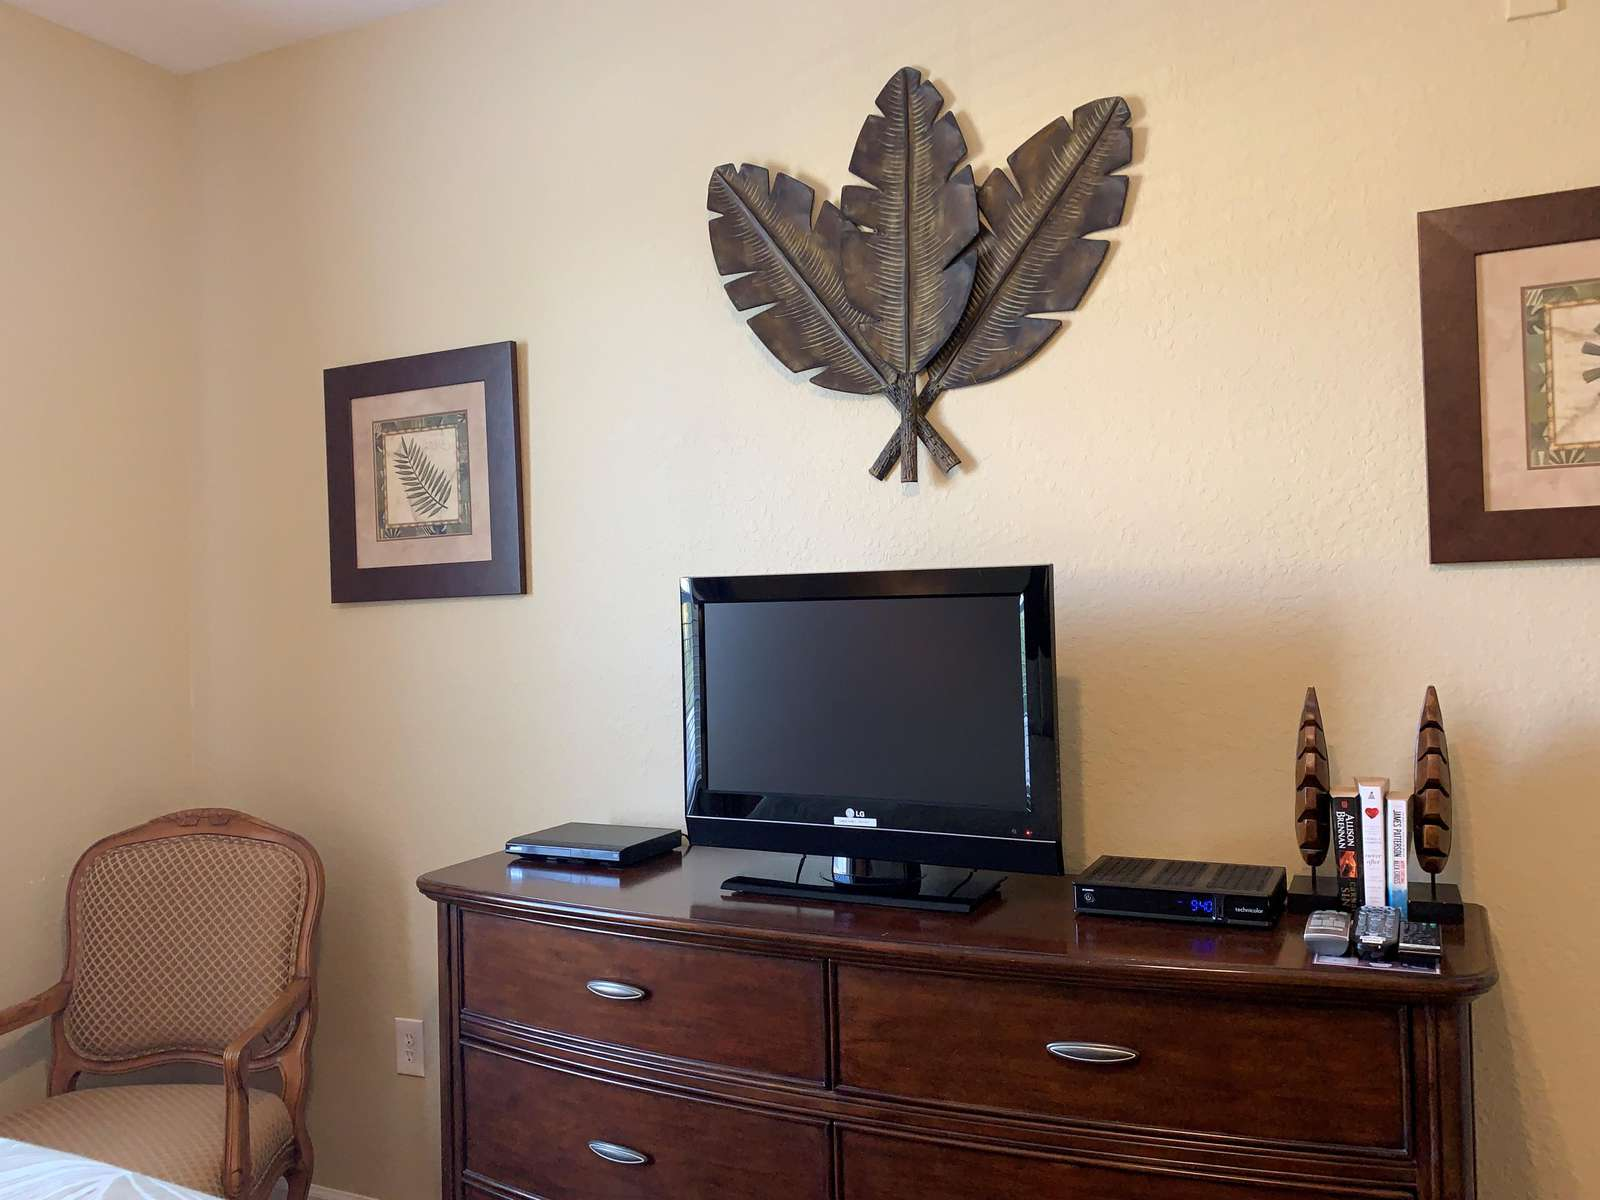 Flat screen TV, DVD, and chair in second bedroom